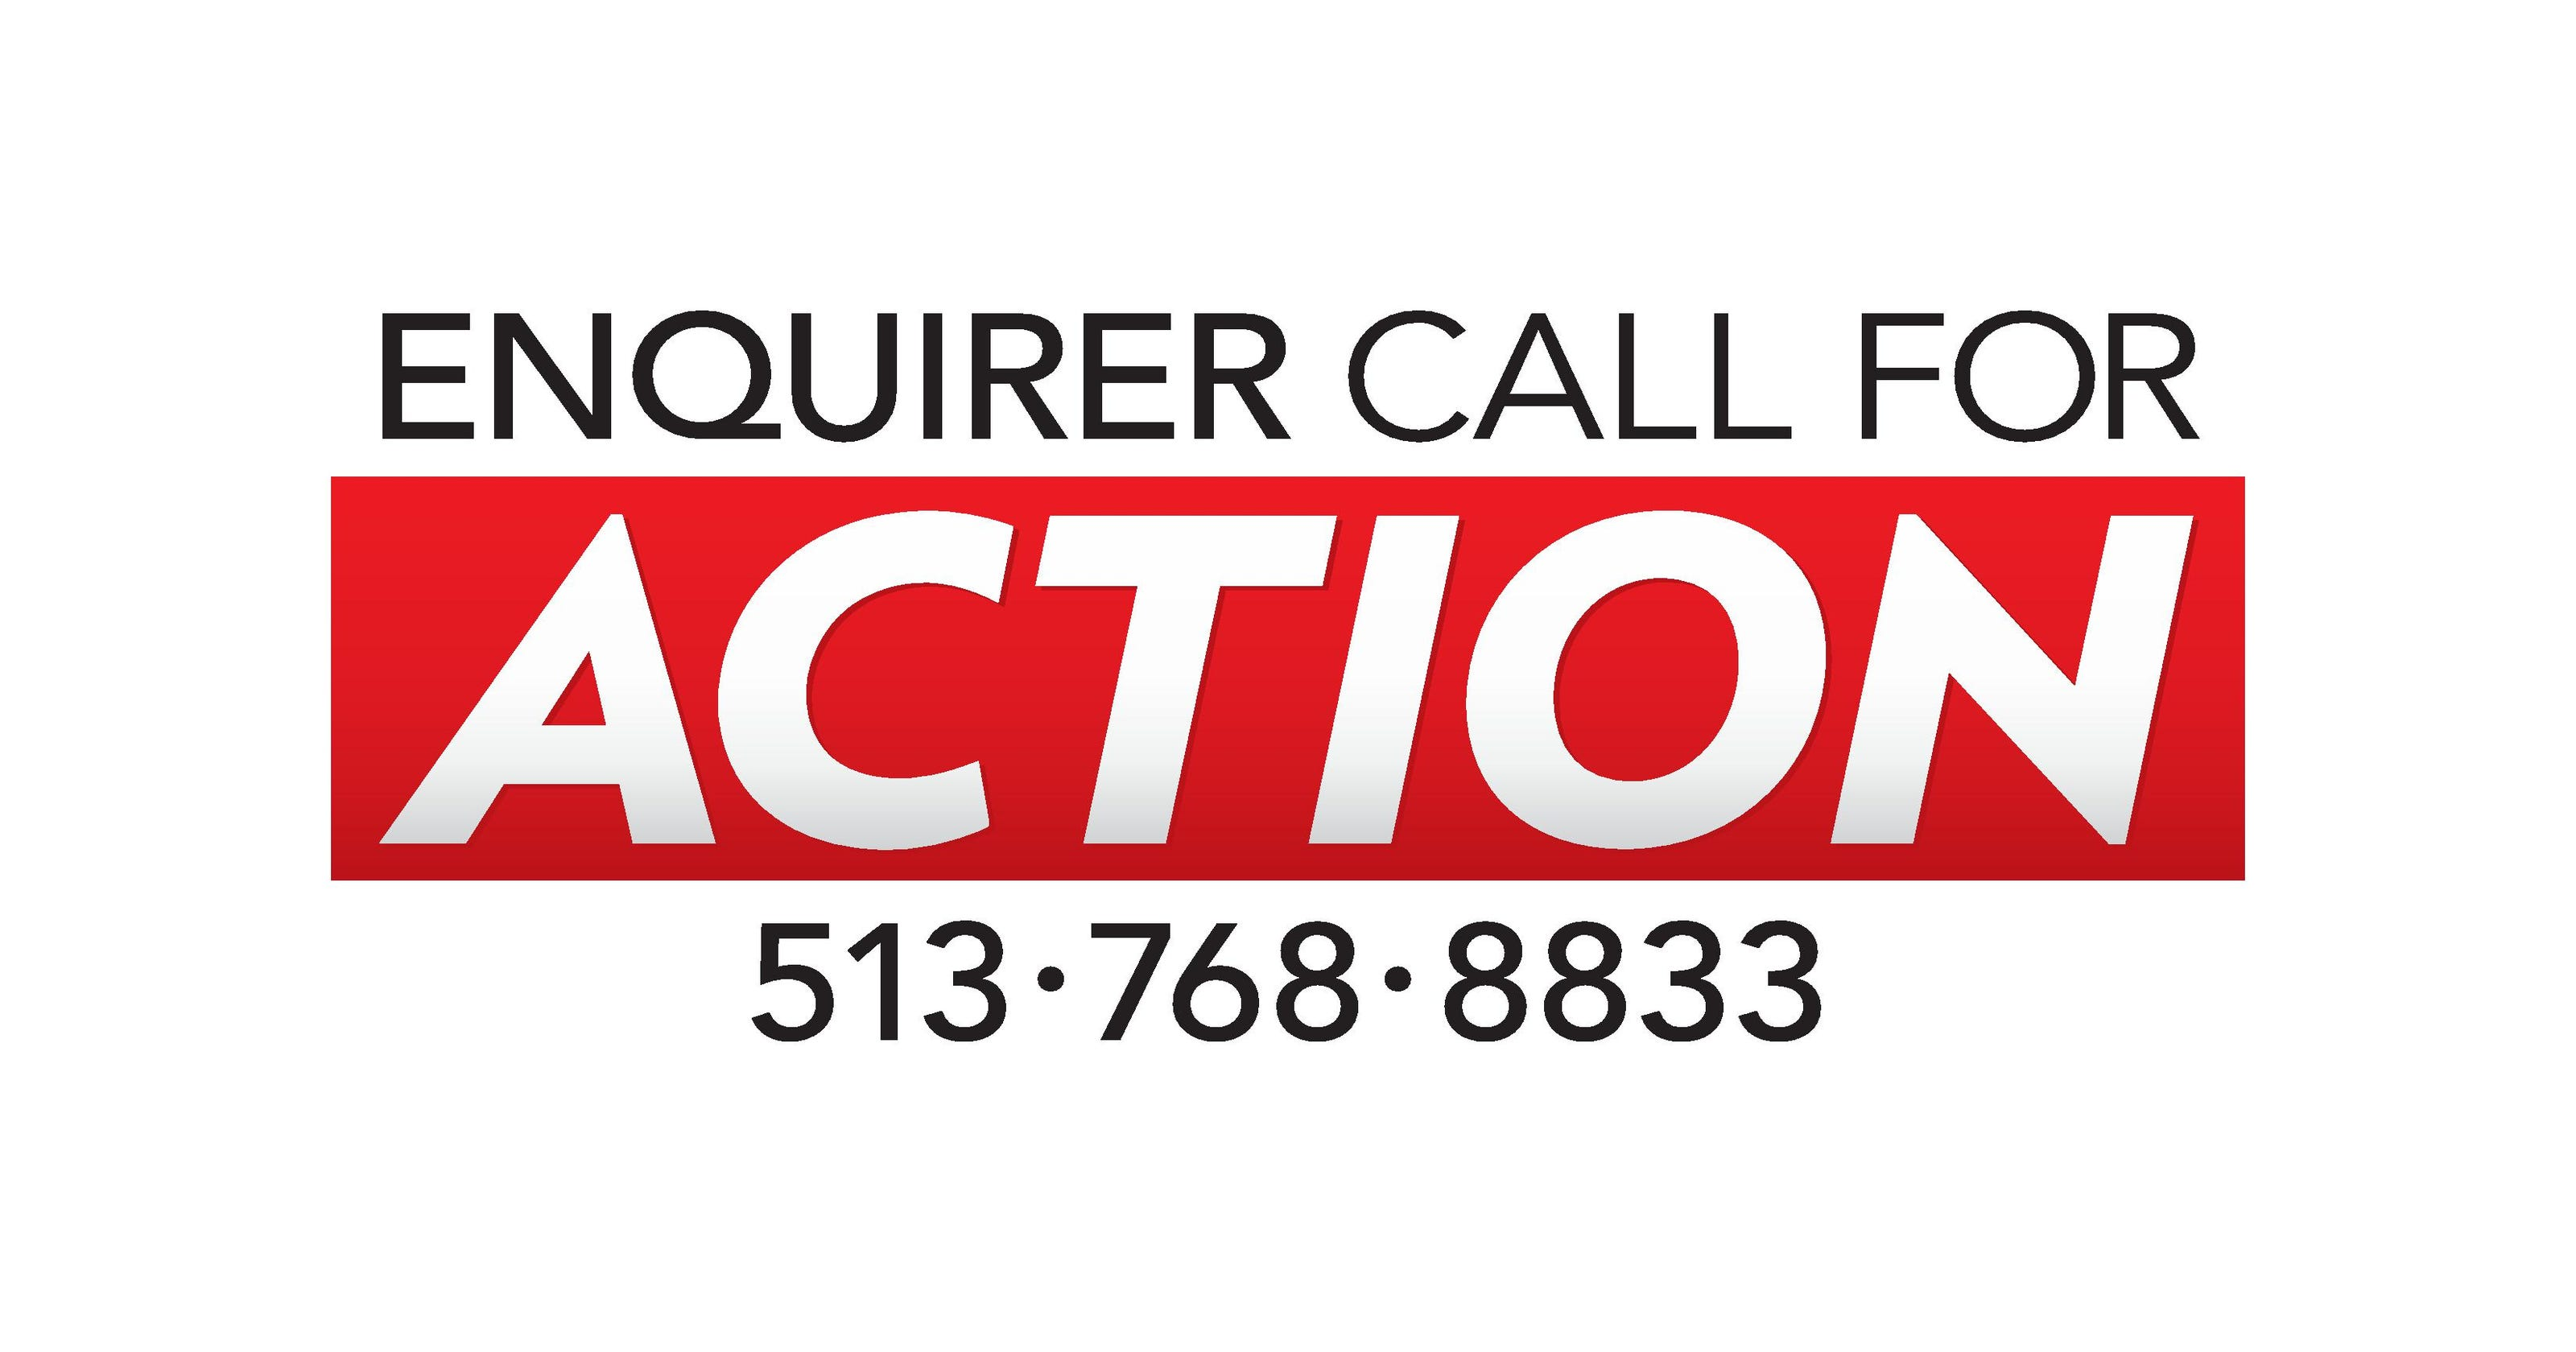 Enquirer Call For Action here to help